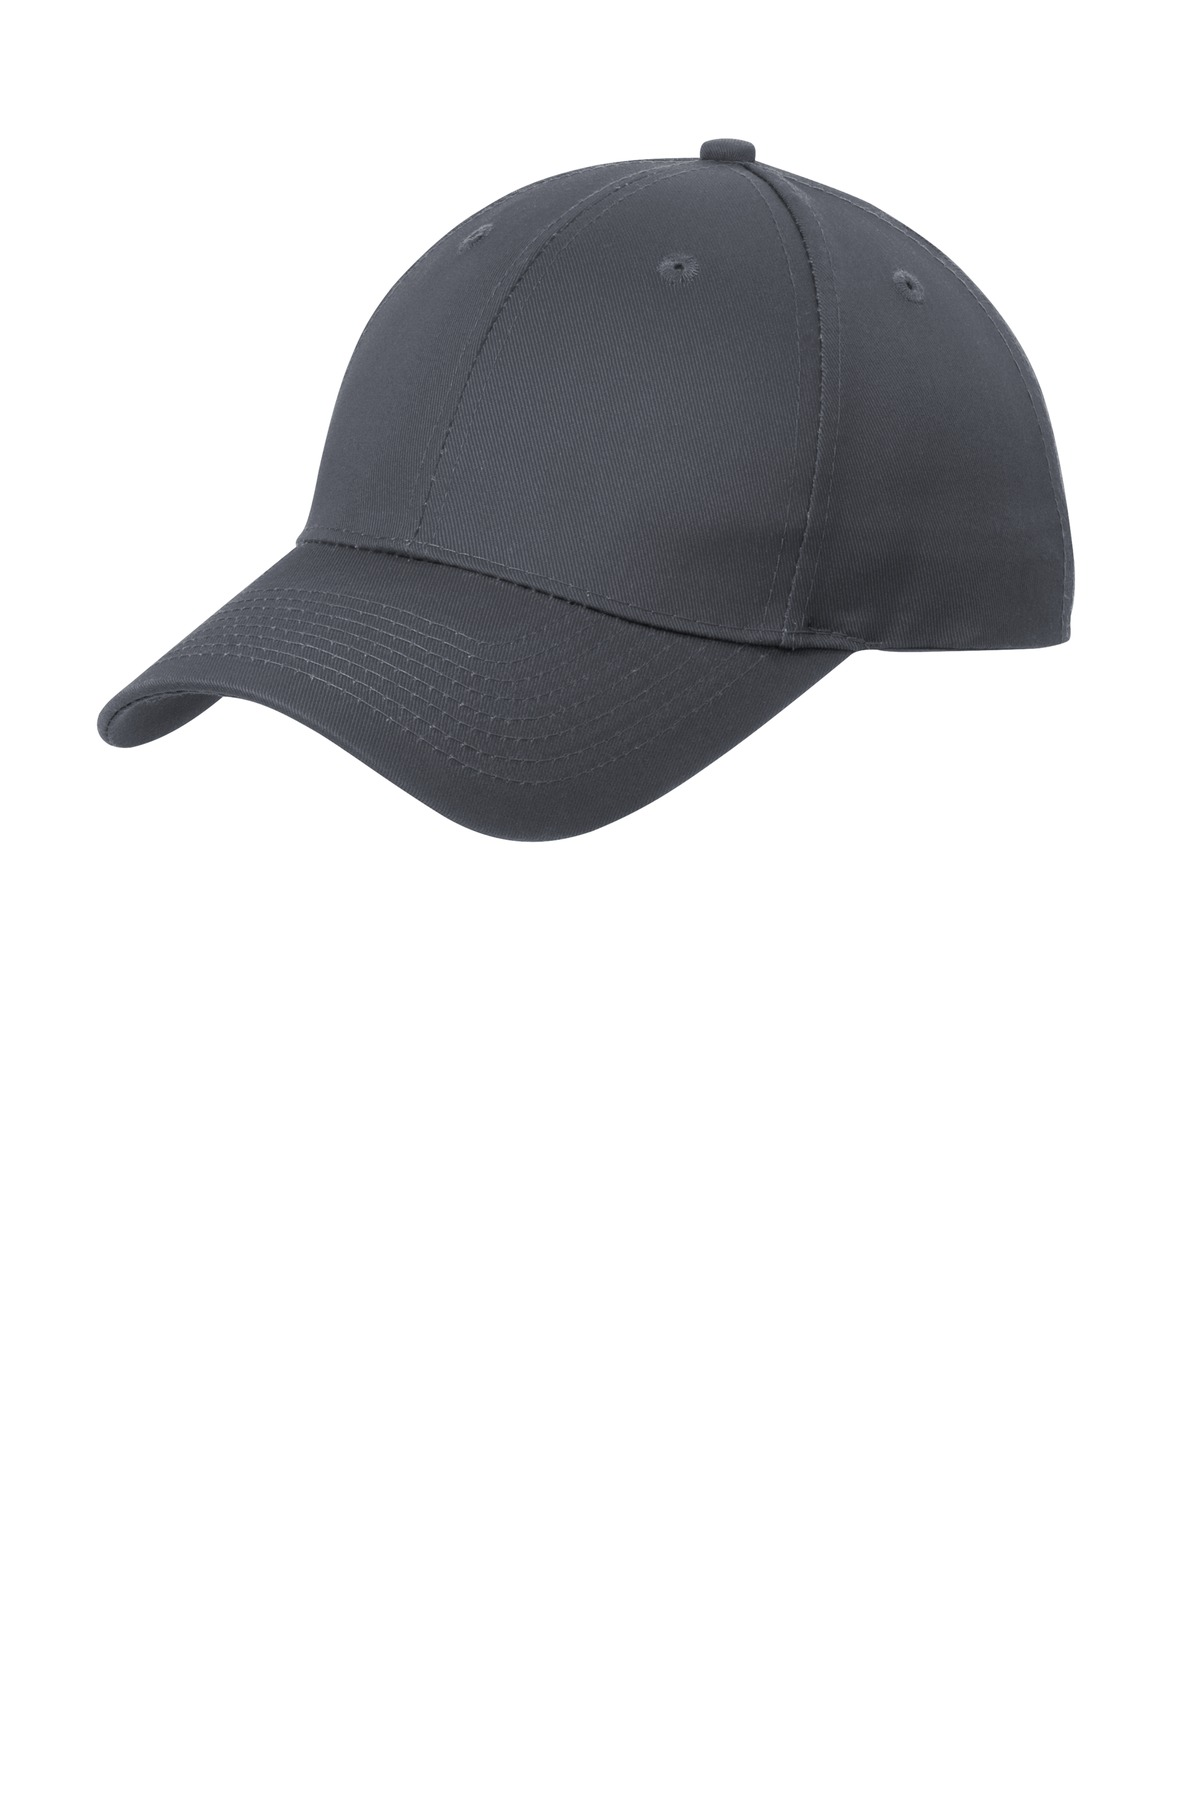 Port Authority ®  Easy Care Cap. C608 - Steel Grey